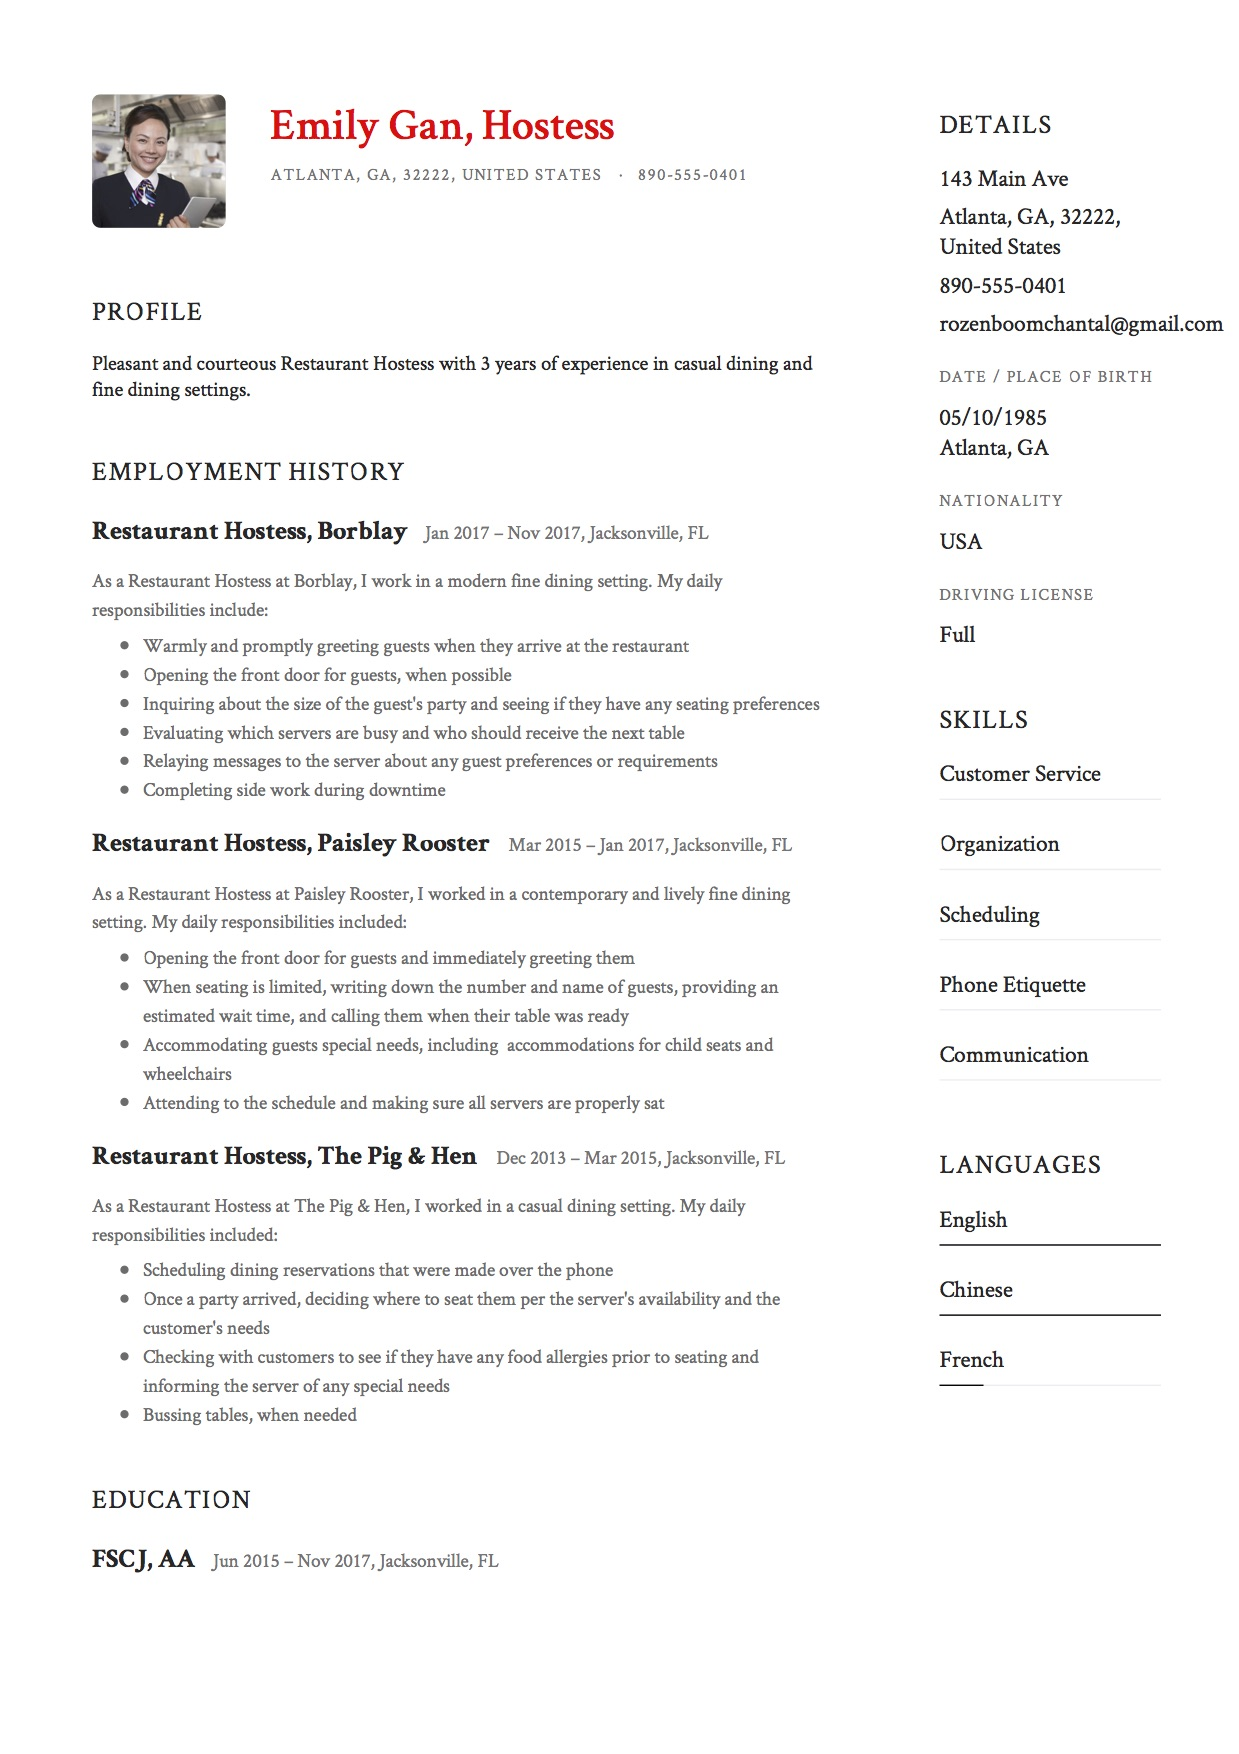 Resume Restaurant Hostess  Resume For Restaurant